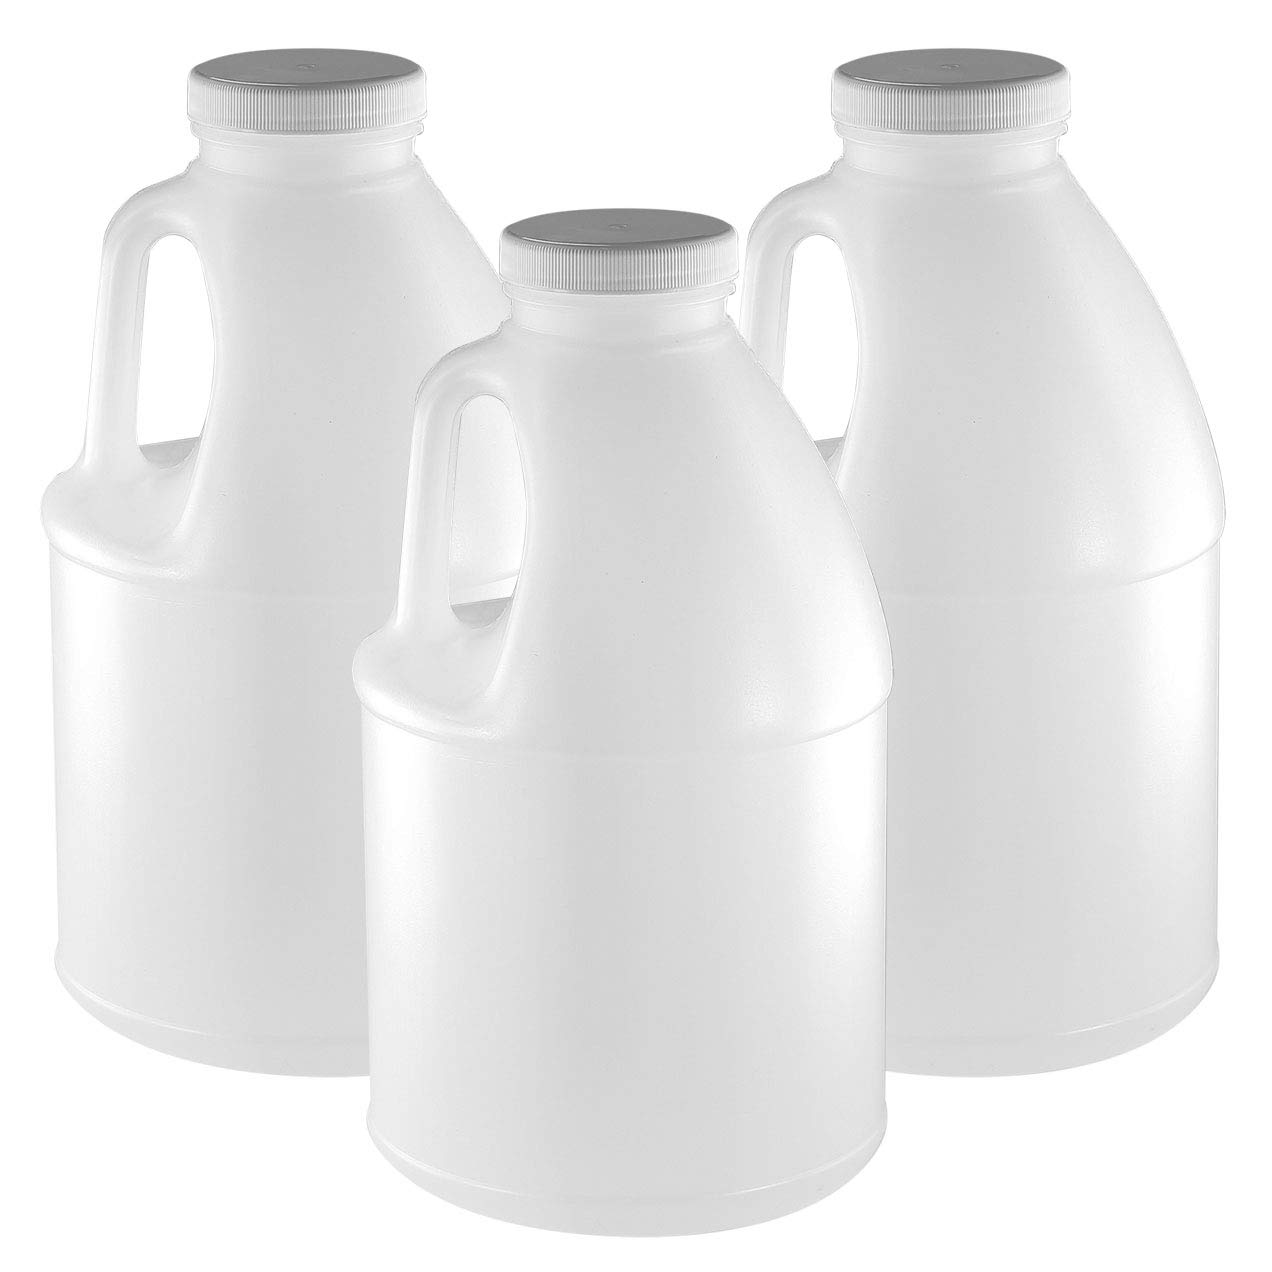 Pinnacle Mercantile 1/2 -Gallon Plastic Jug (3 -Pack) Reusable, Food-Safe, BPA Free | Heavy-Duty HDPE Containers for Water, Sauces, Soaps, Honey (6 lb.) Detergents, Liquids 64 Ounces| Screw-On Cap